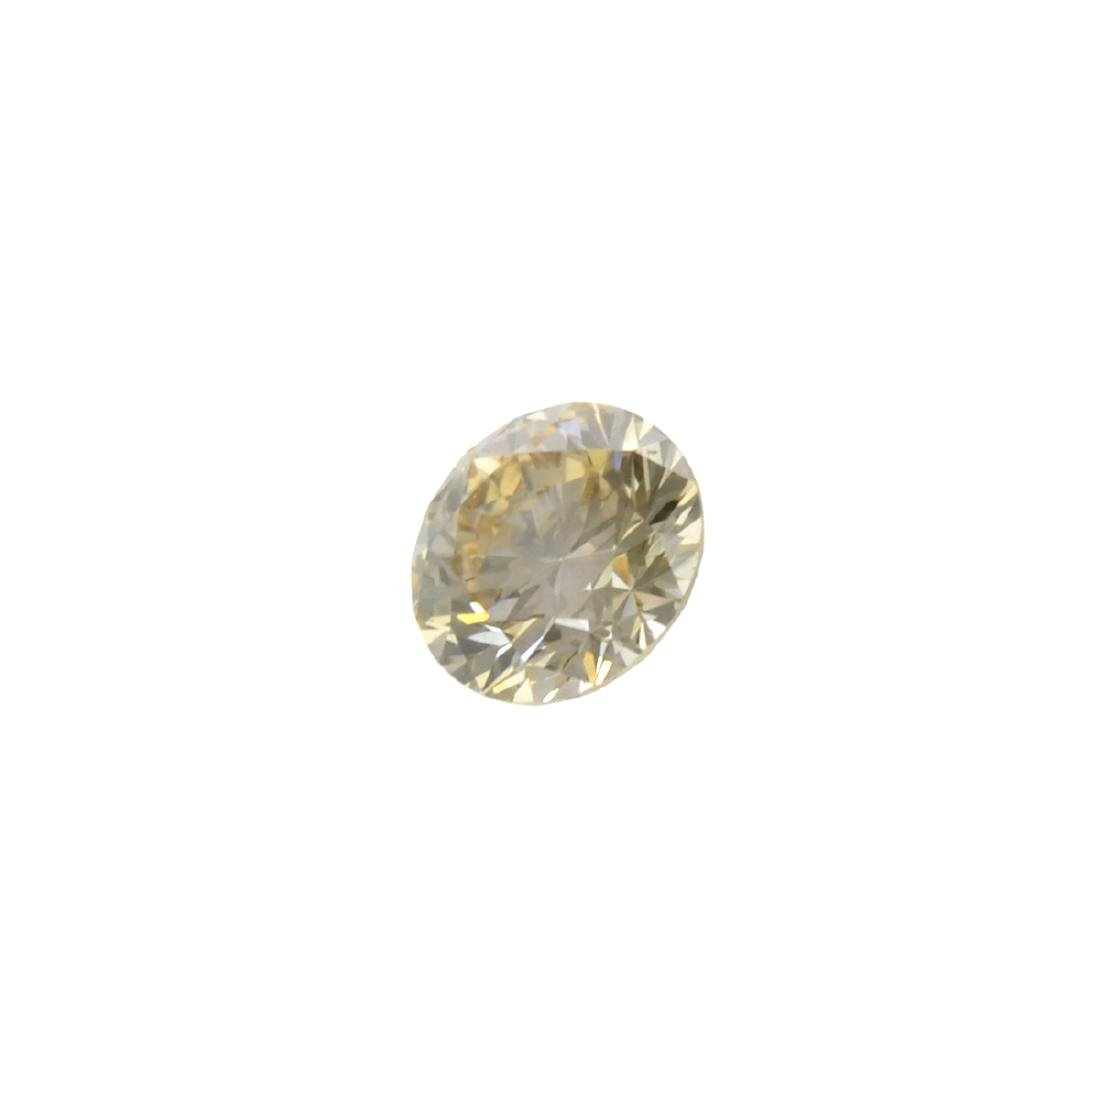 Fine Jewelry GIA Certified 0.74CT Brilliant Round Cut